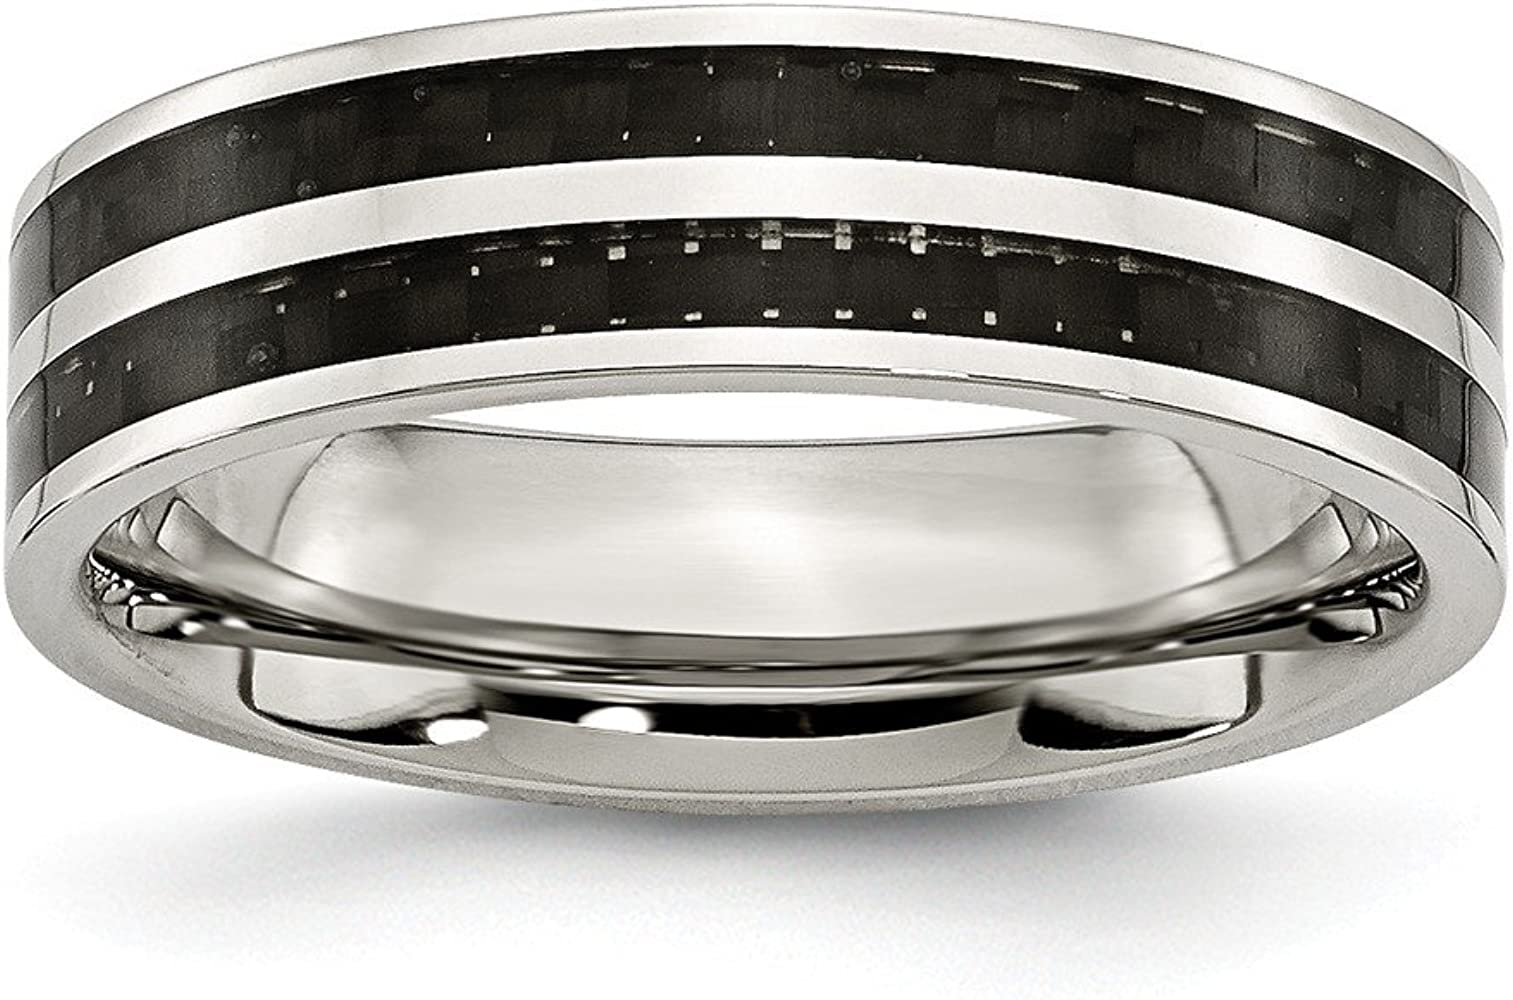 Stainless Steel 6mm Double Row Black Carbon Fiber Inlay Polished Band Size 6.5 Length Width 6